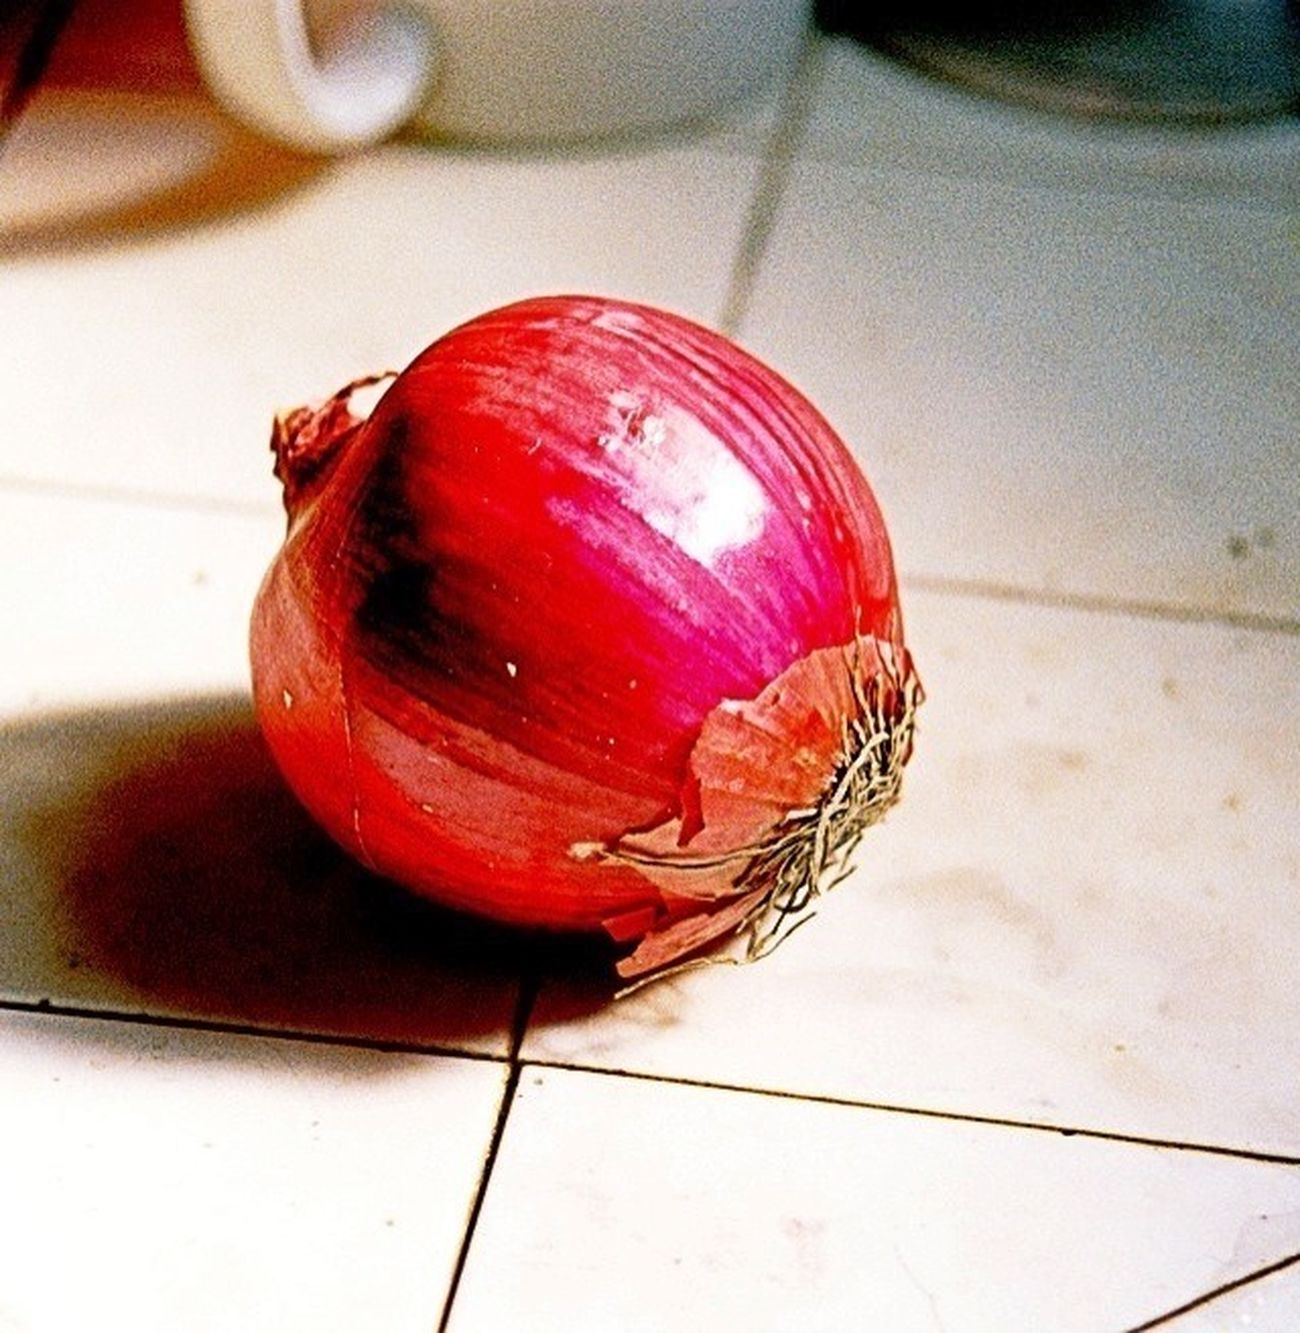 Mmmmh Red Onions Real Film Taking Photos HDR FX Pro